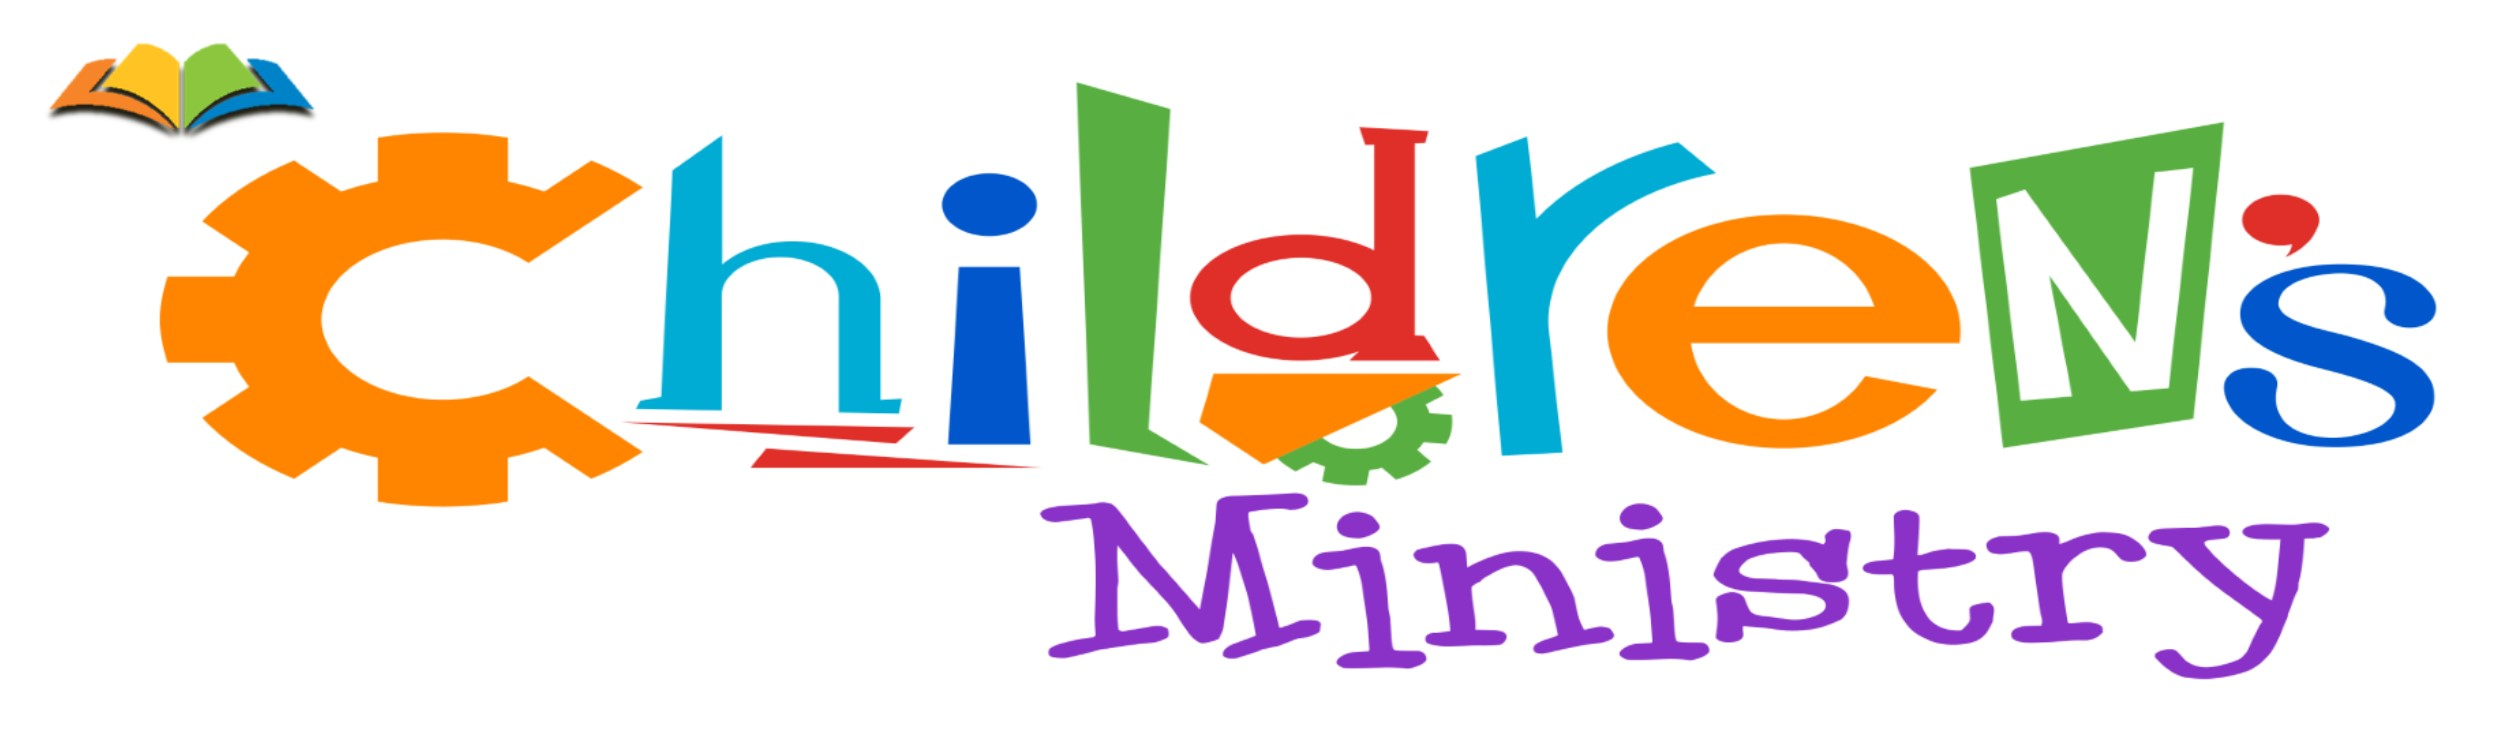 childens ministry